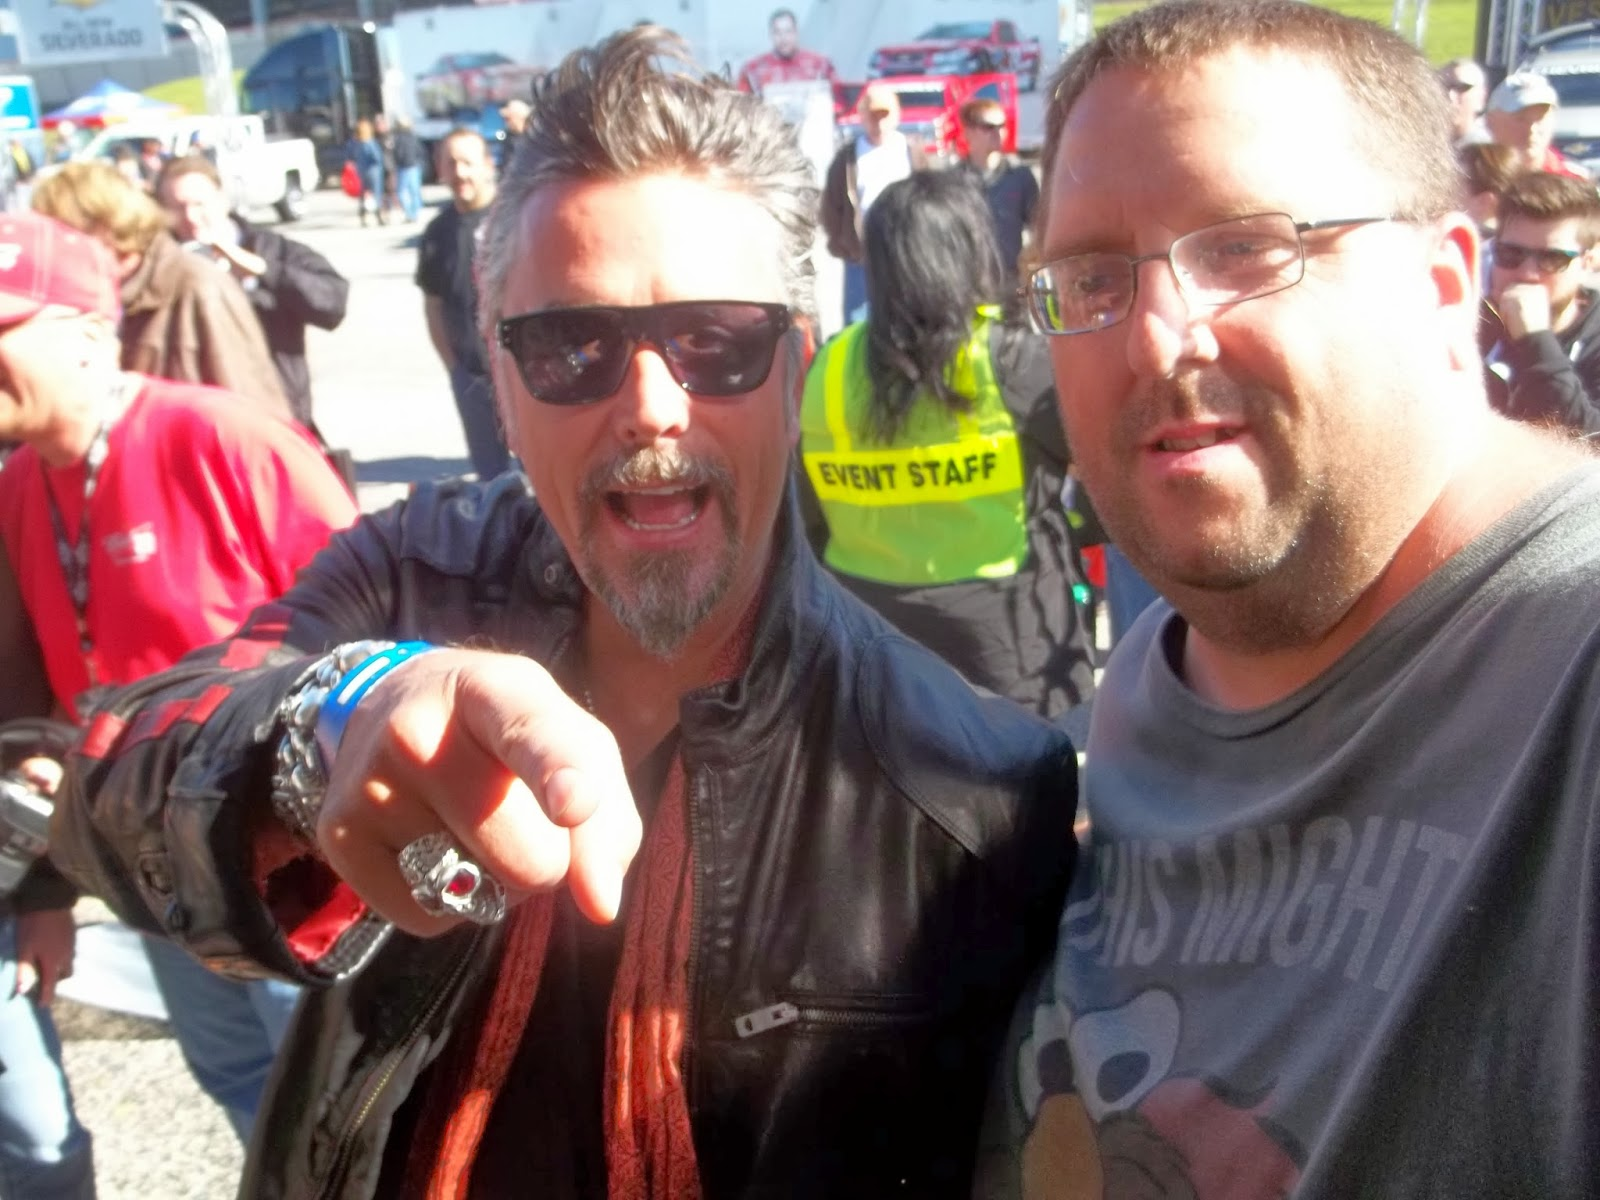 dennis collins from gas monkey